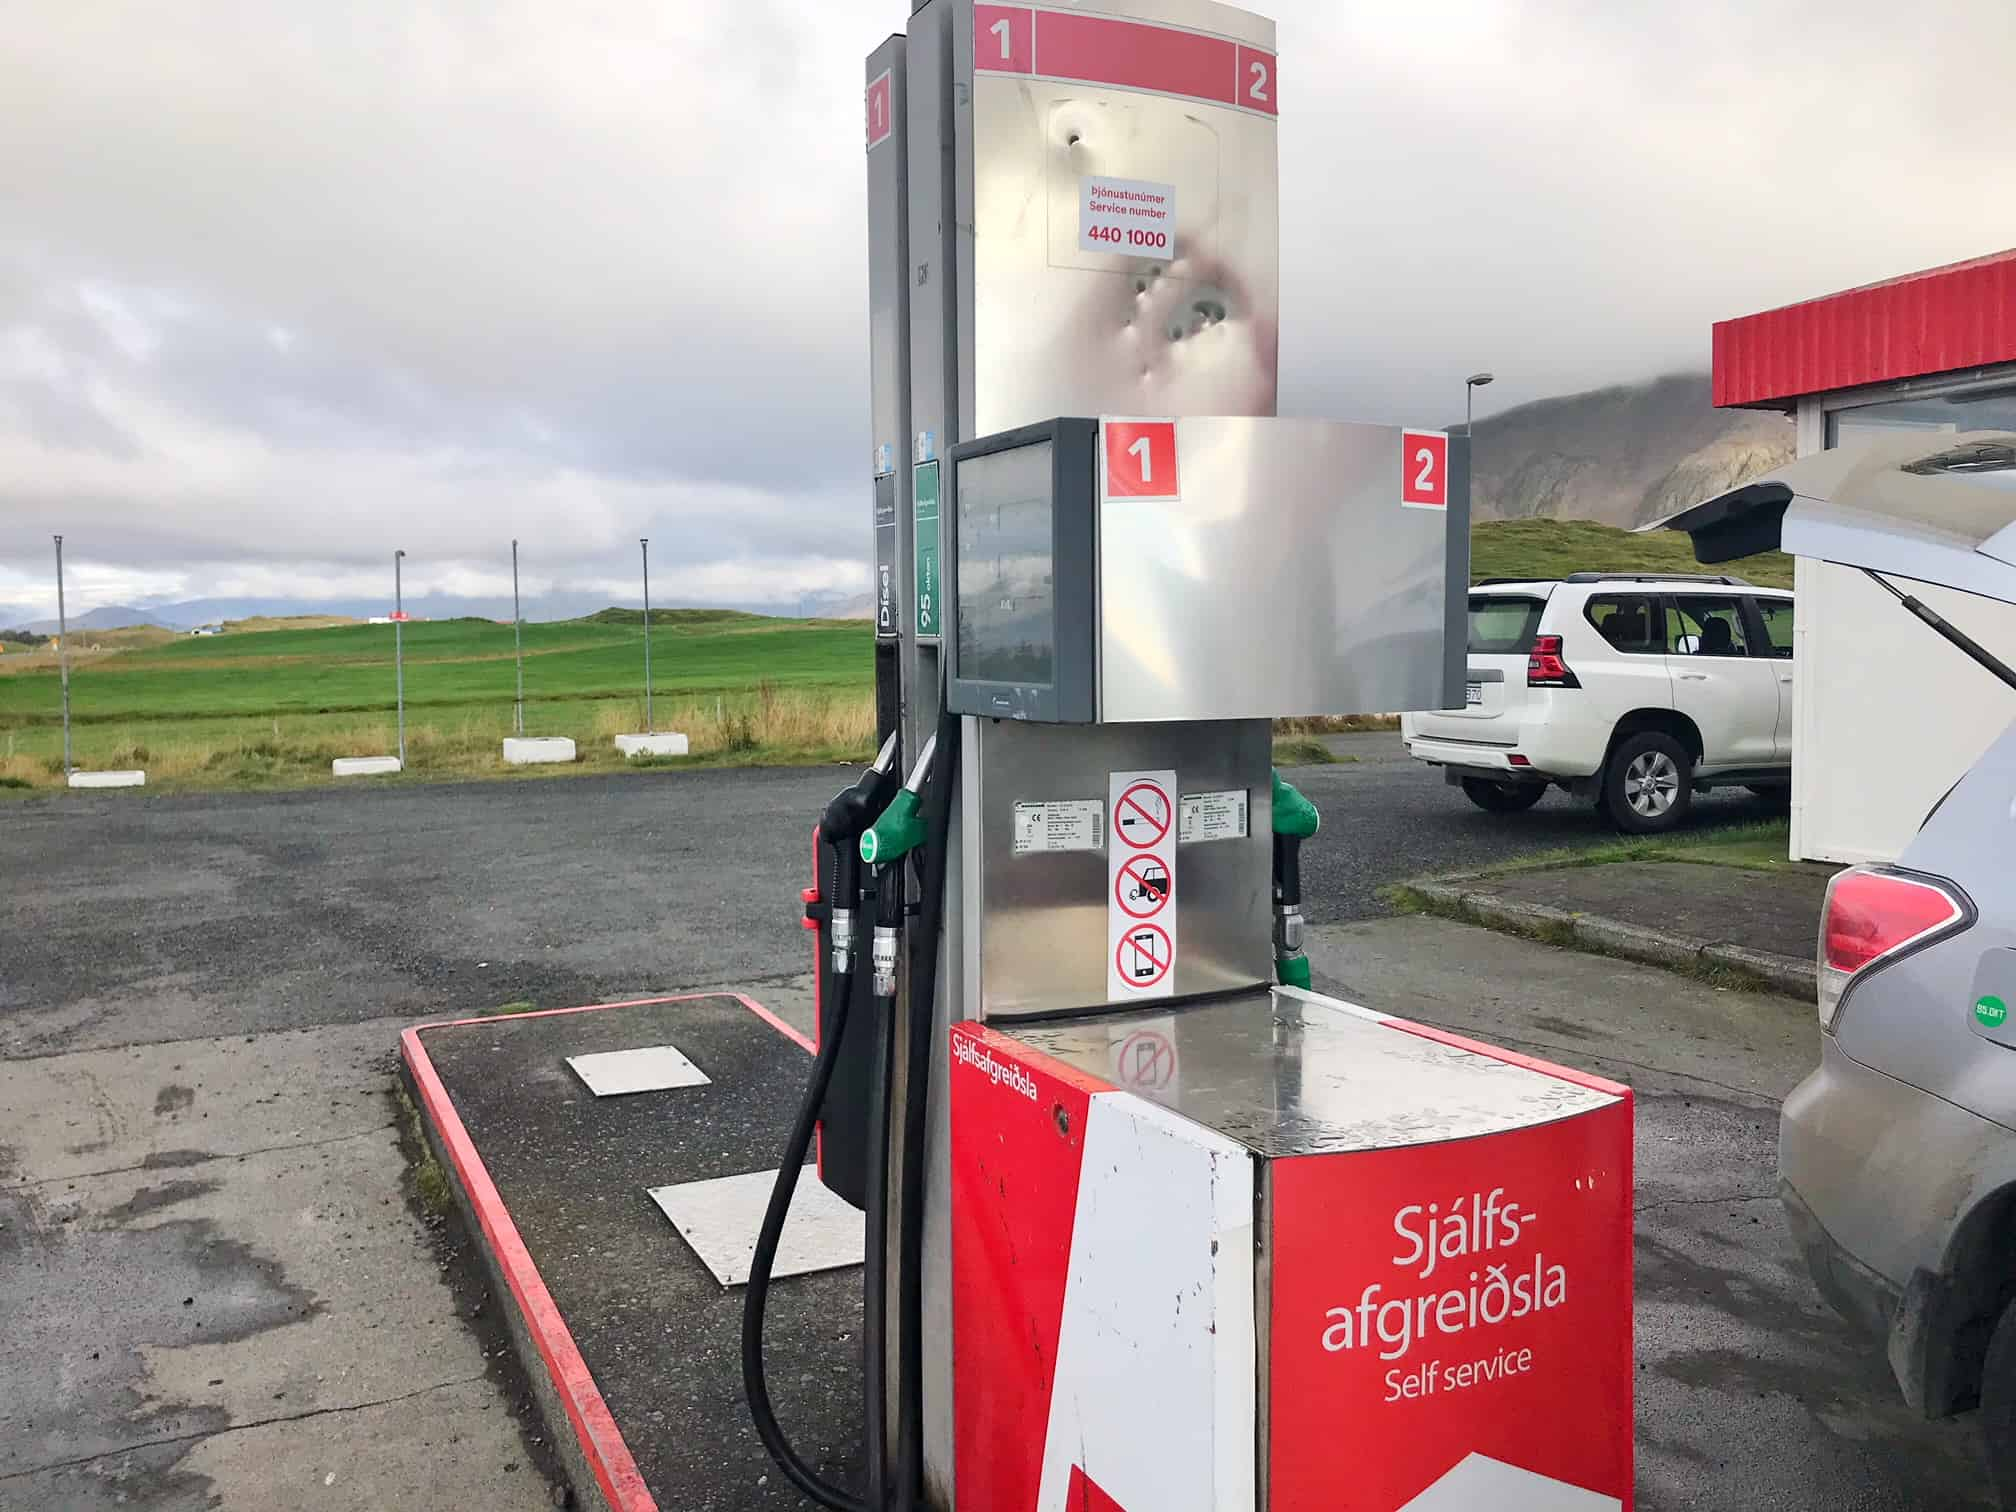 you will need cash currency in Iceland for getting gas in Iceland | cash money in Iceland is necessary for gas if you don't have a pin card